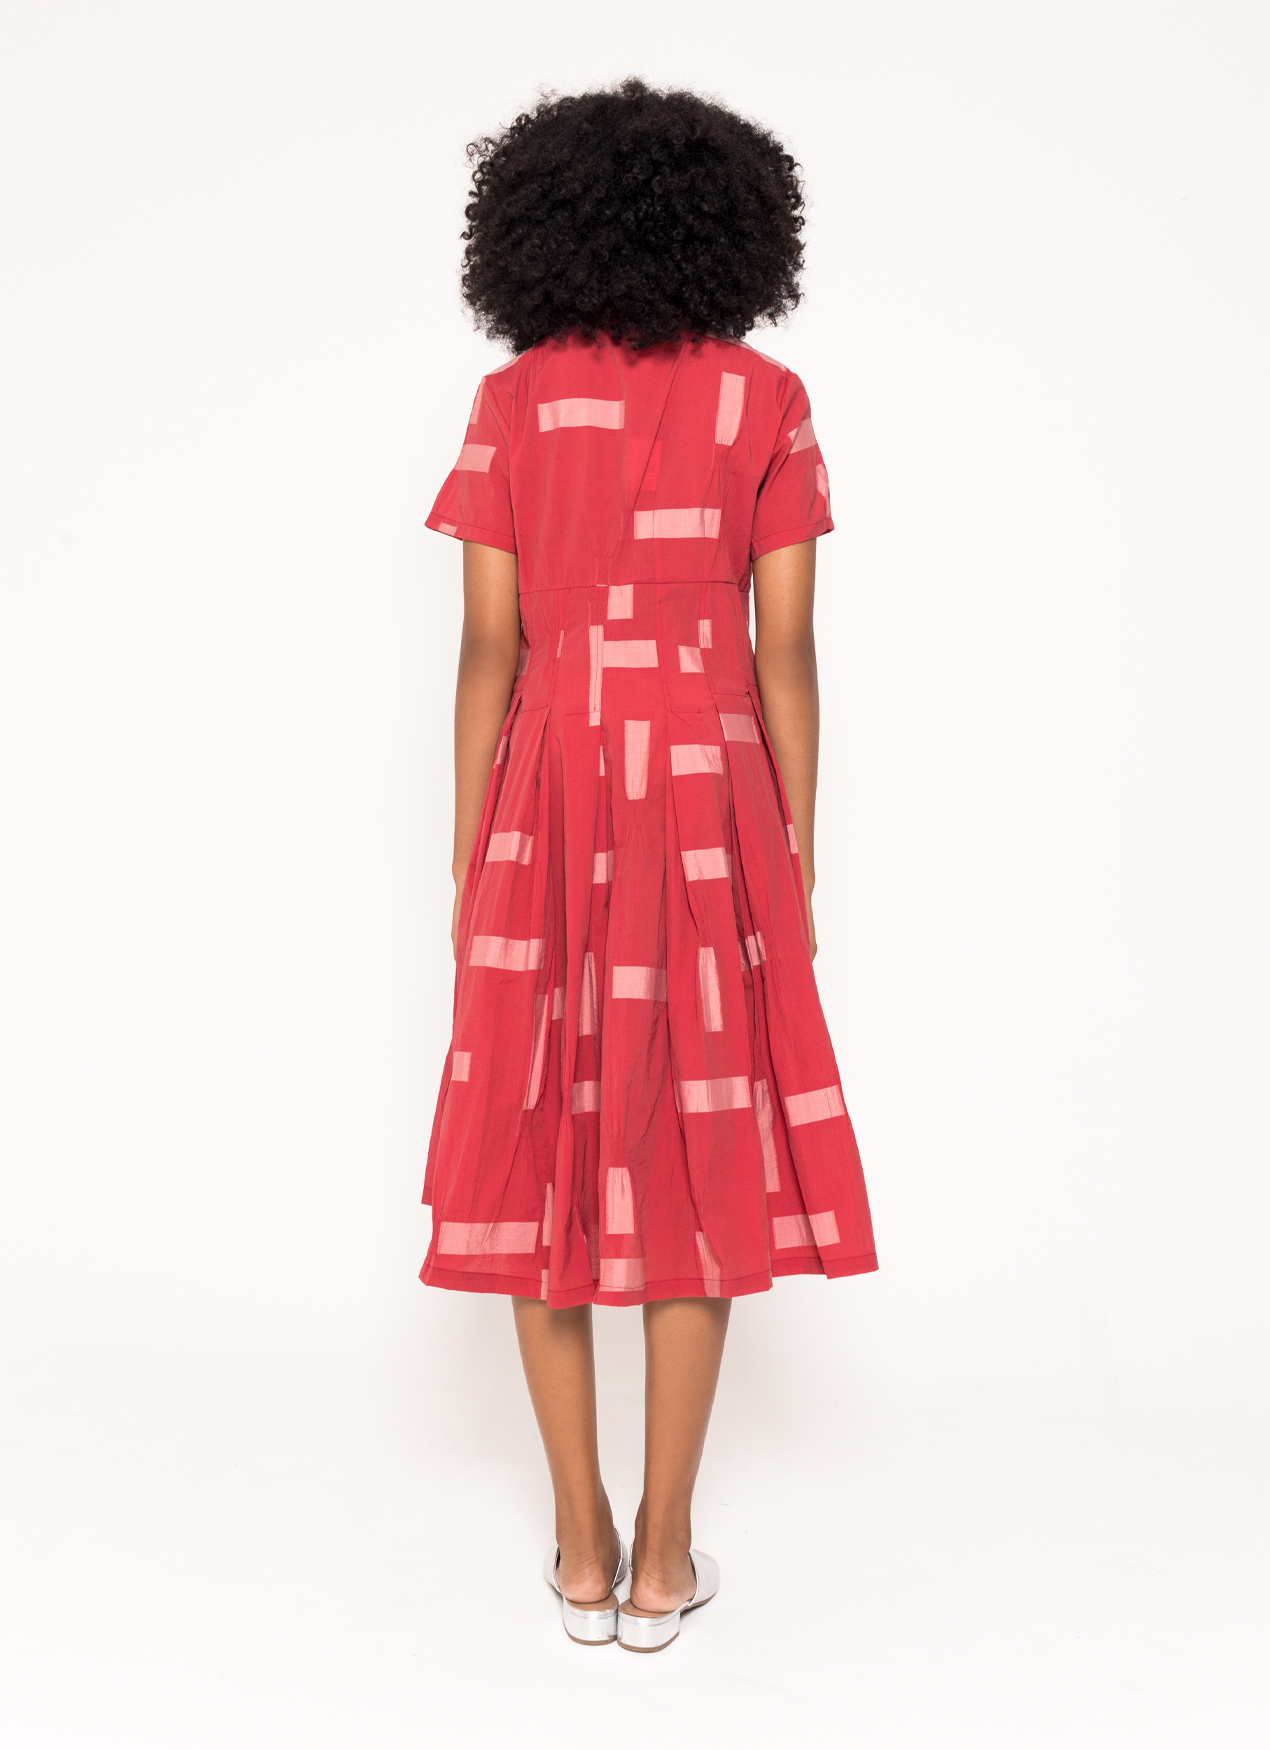 BOWN Janel Dress - Red